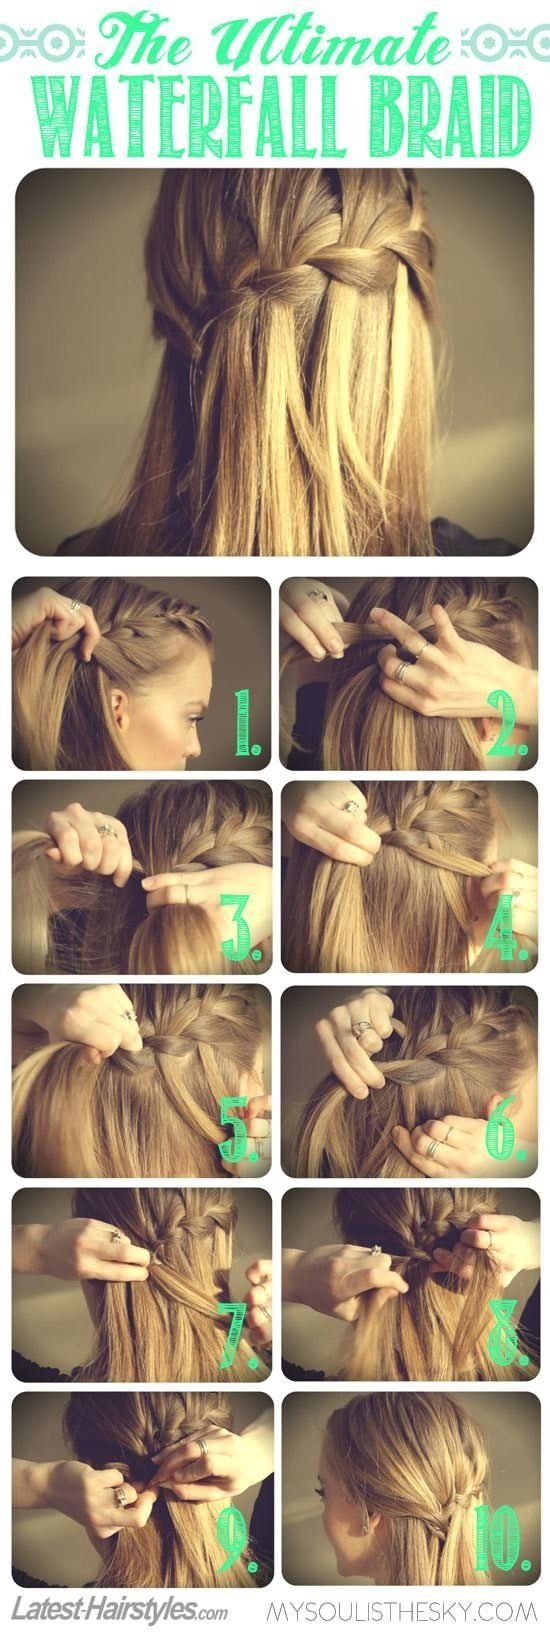 12 Half up Half down Hair Tutorials You Must Have